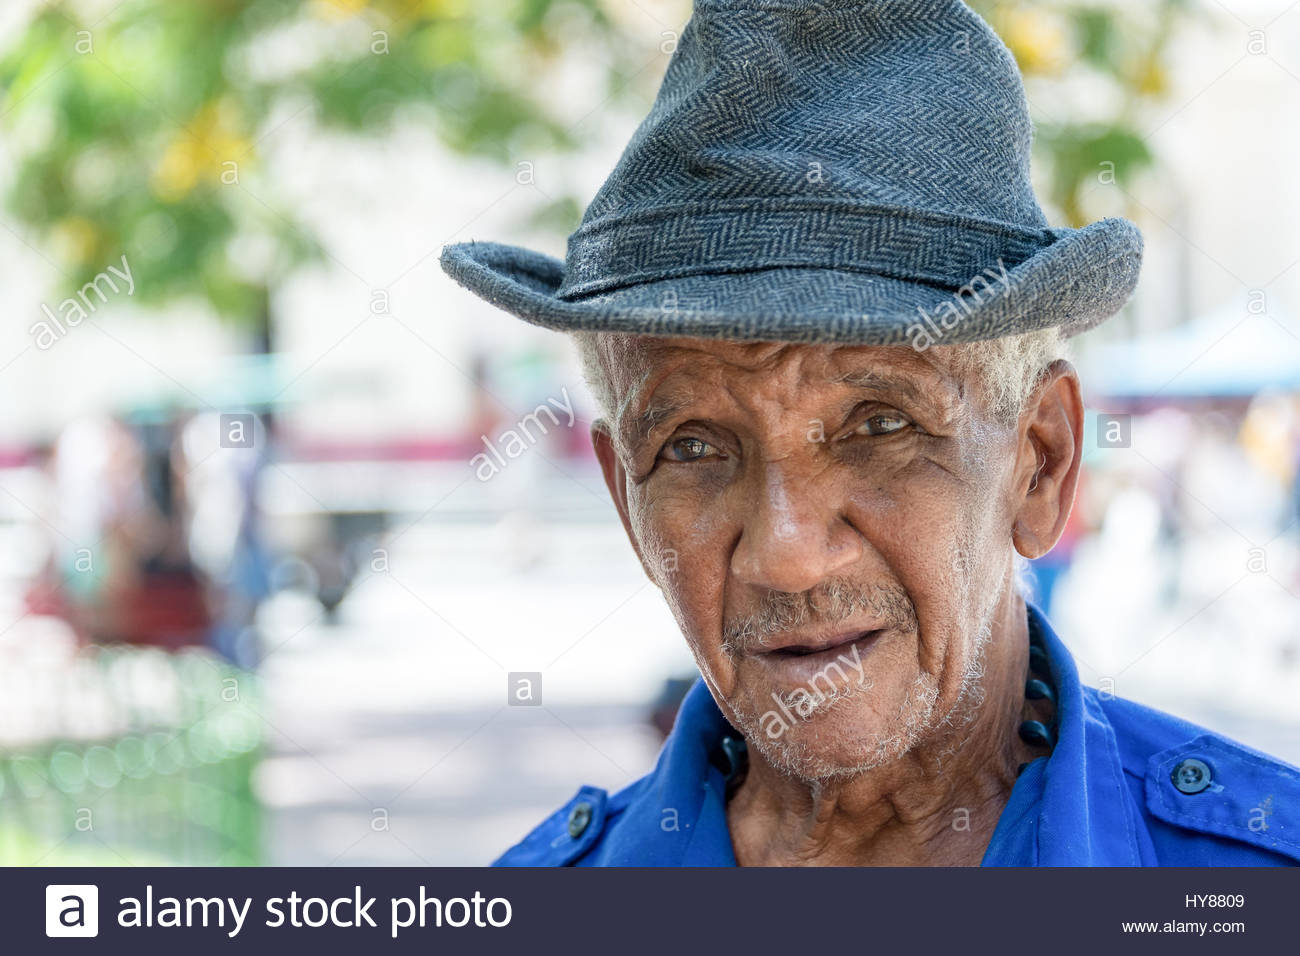 Cuban real people faces man in outdoor urban area in daytime portrait of an old man wearing hat